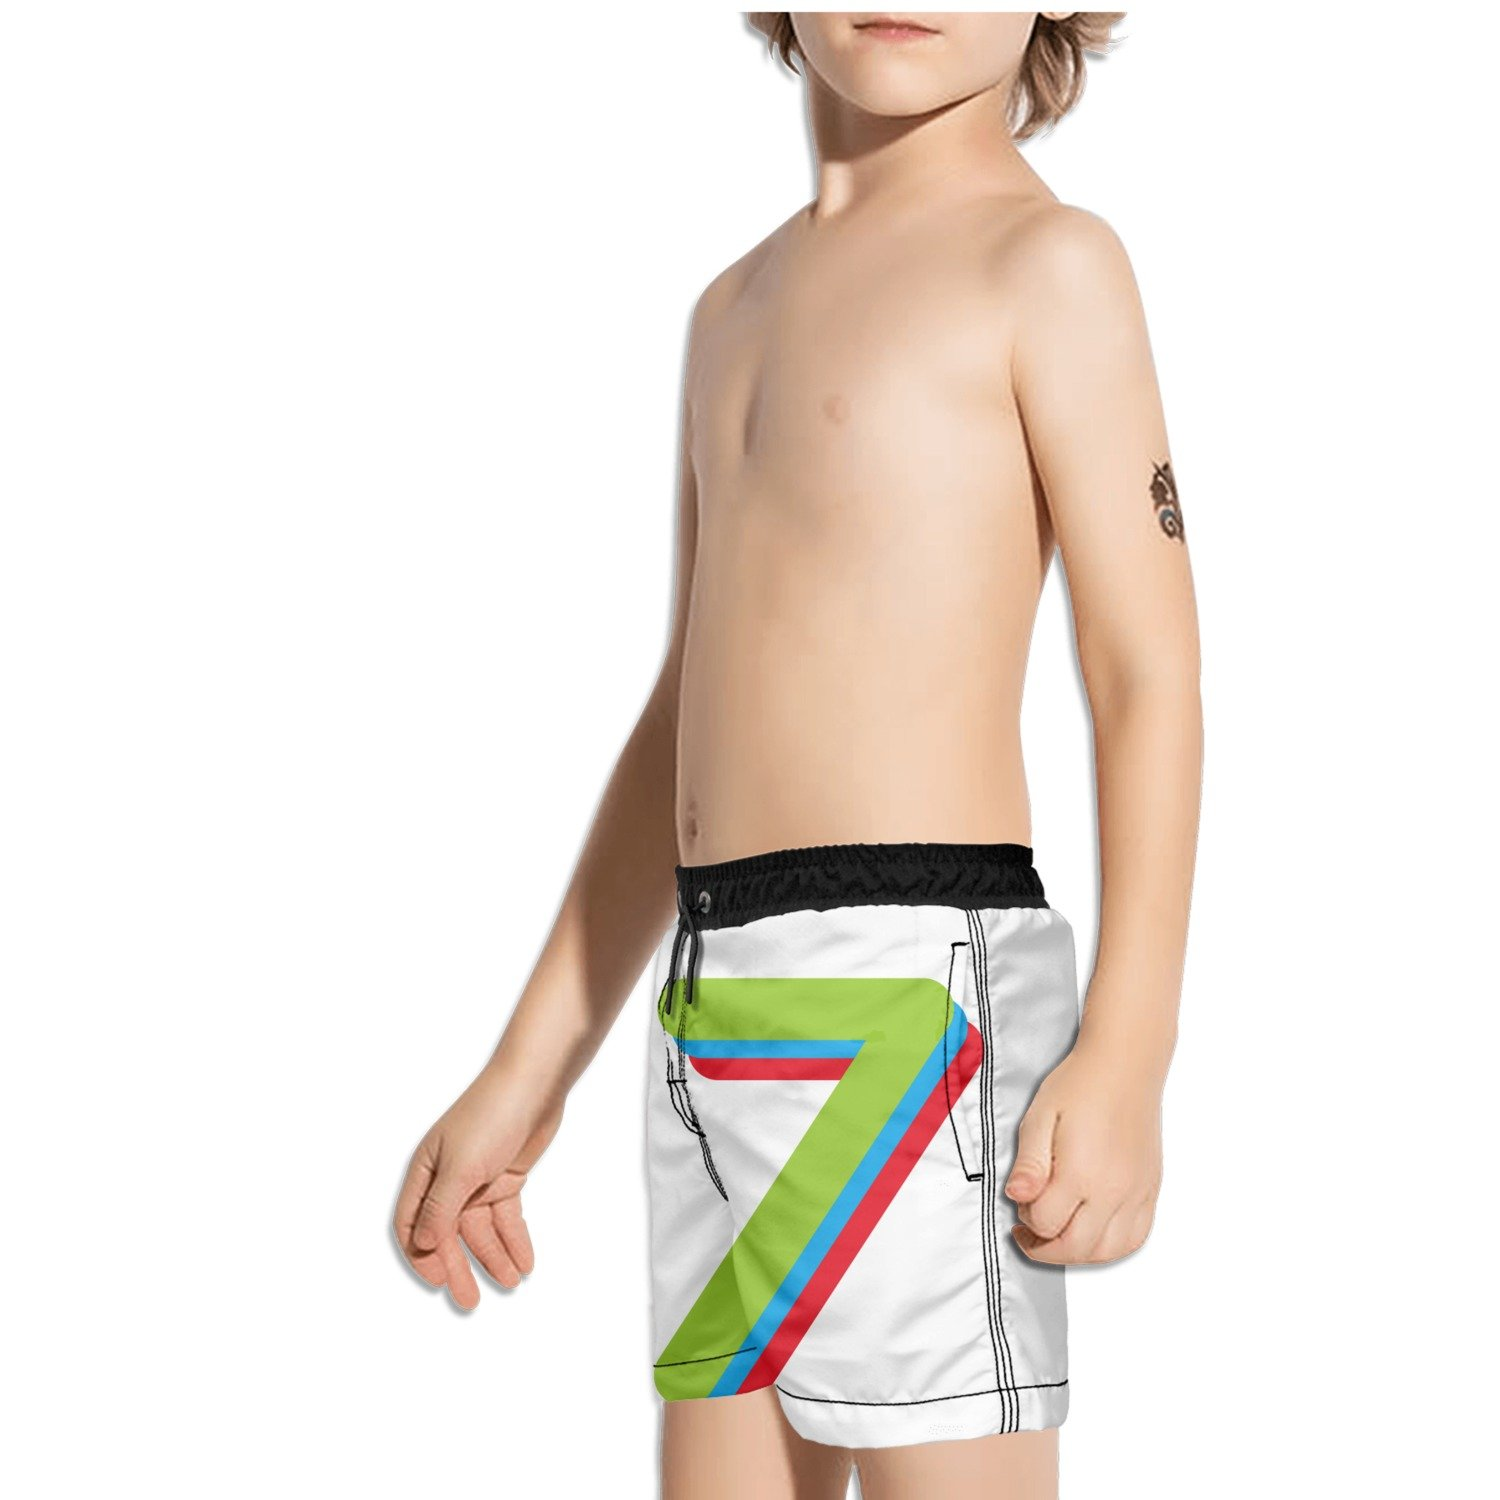 Ouxioaz Boys Swim Trunk No 17 Designed Art Beach Board Shorts